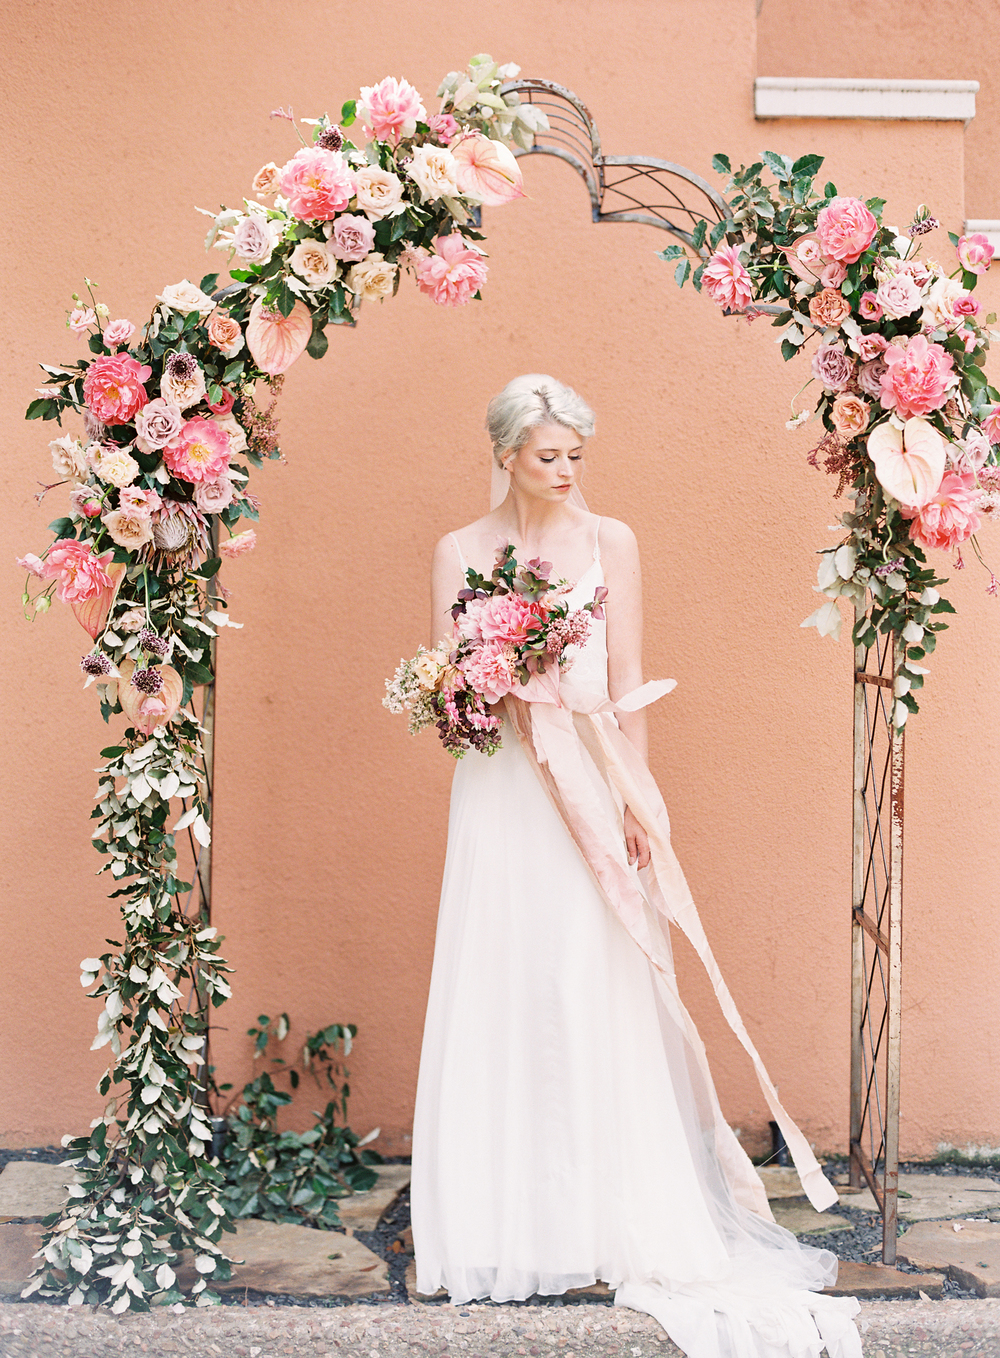 wedding arch | terracotta pink wedding inspiration designed by The Wildflowers | follow us on instagram: @ thewildflowers.events